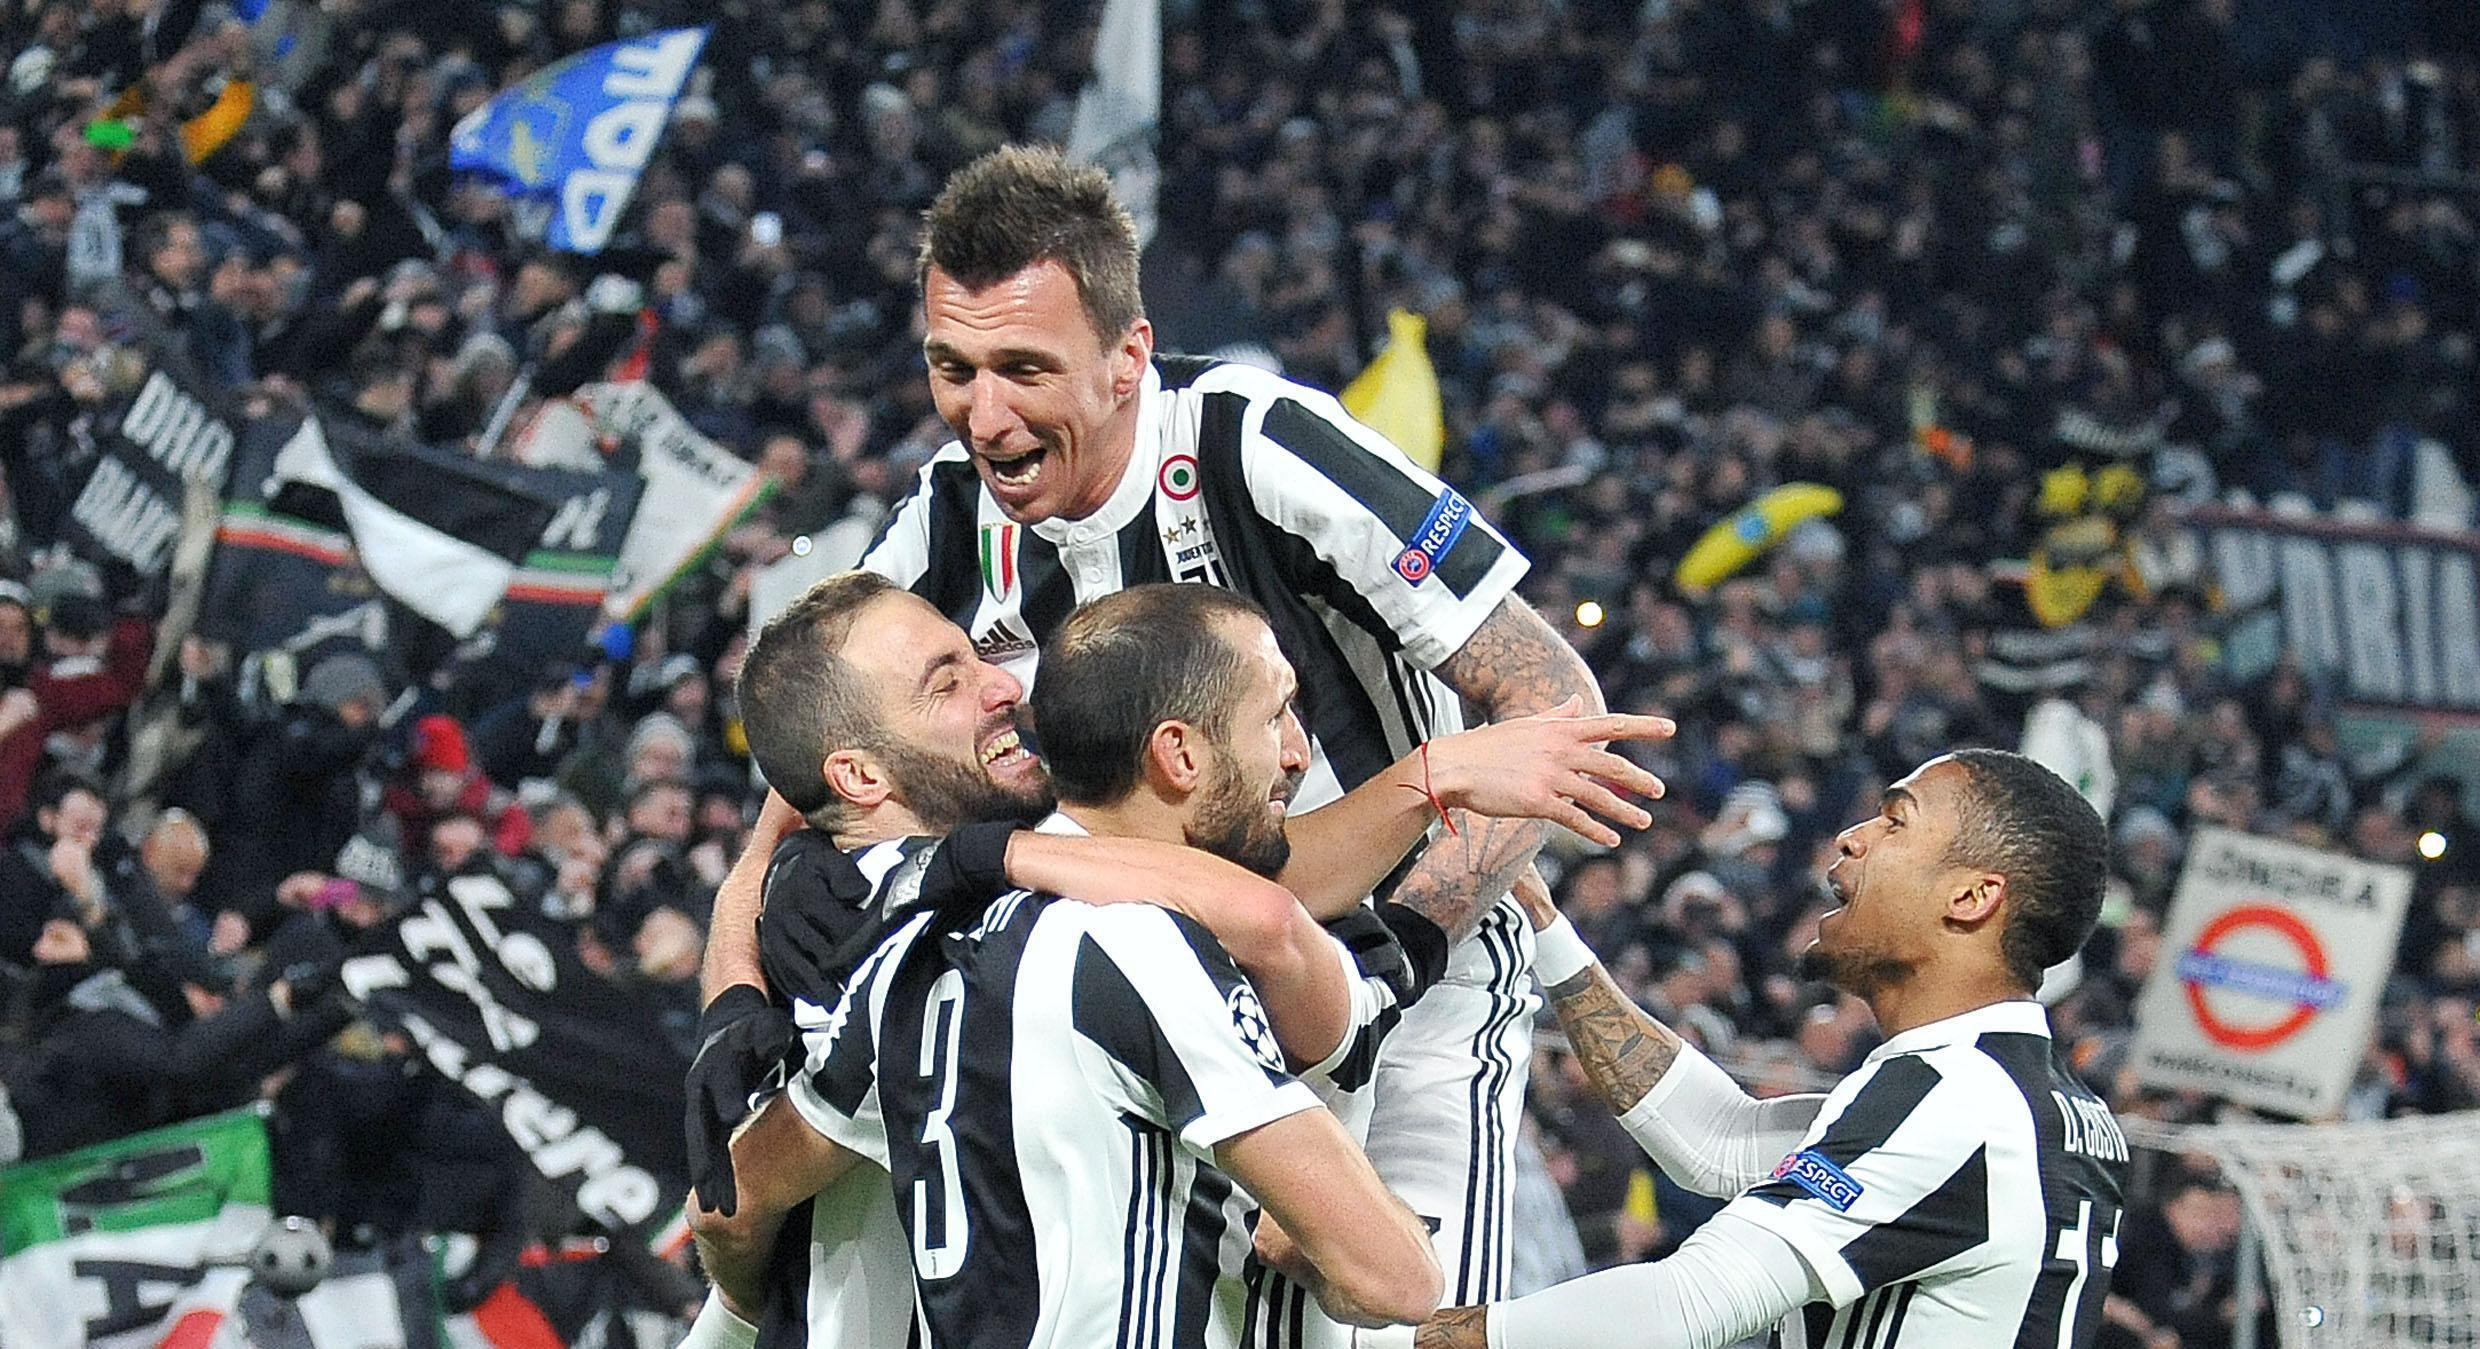 Juventus raced into the lead thanks to a brace from Gonzalo Higuain